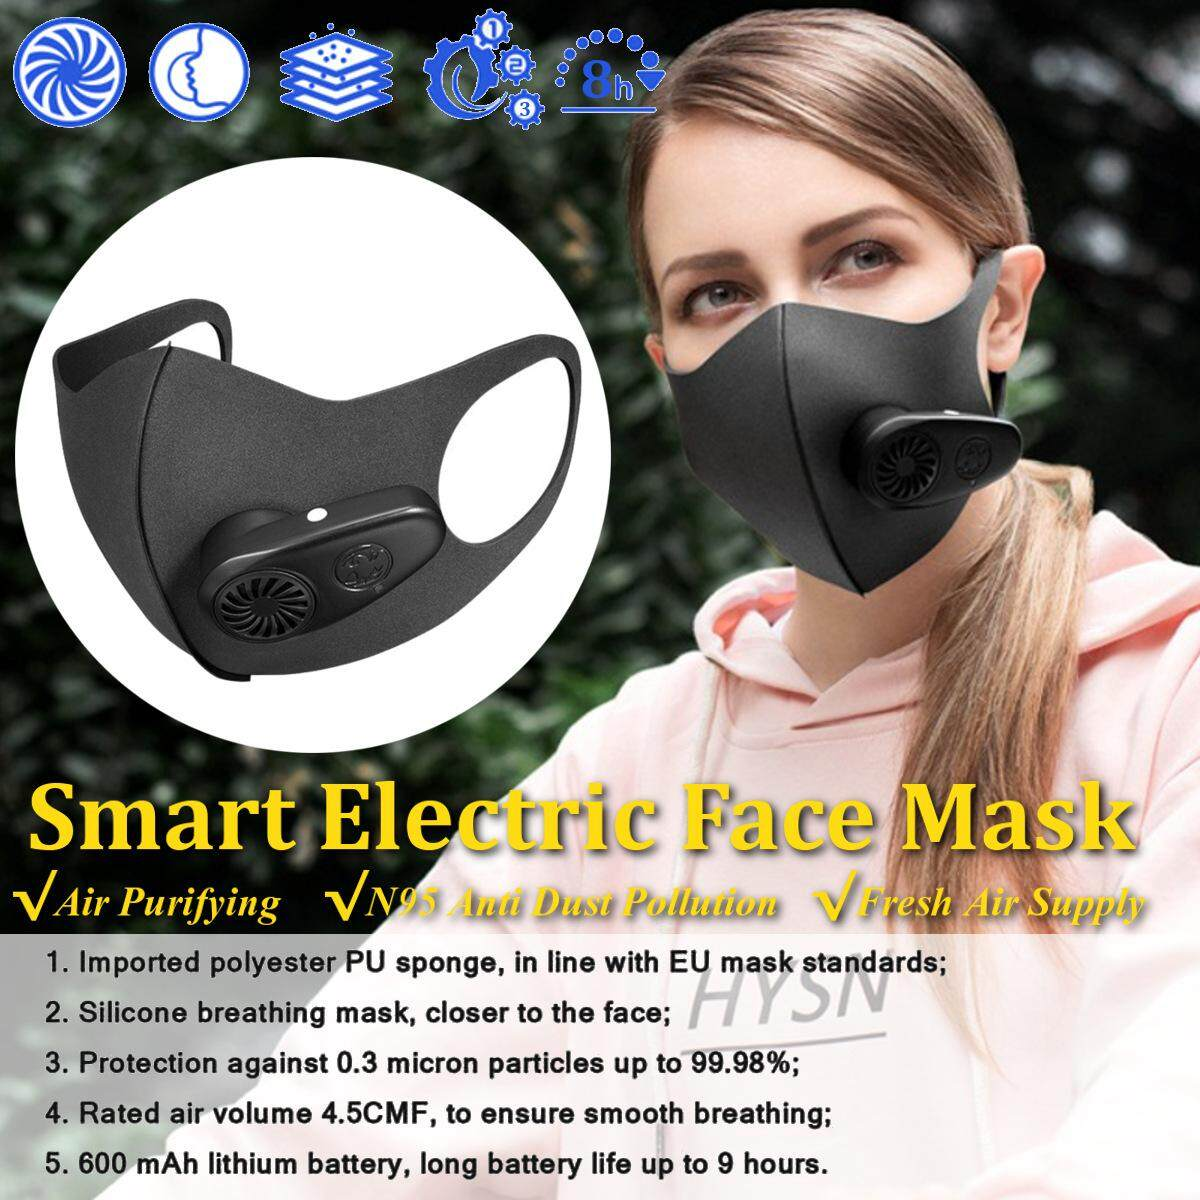 Anti-Fog Pm2.5 Smart Electric Face Mask Air Purifying N95 Anti Dust Pollution Fresh Air Supply By Glimmer.